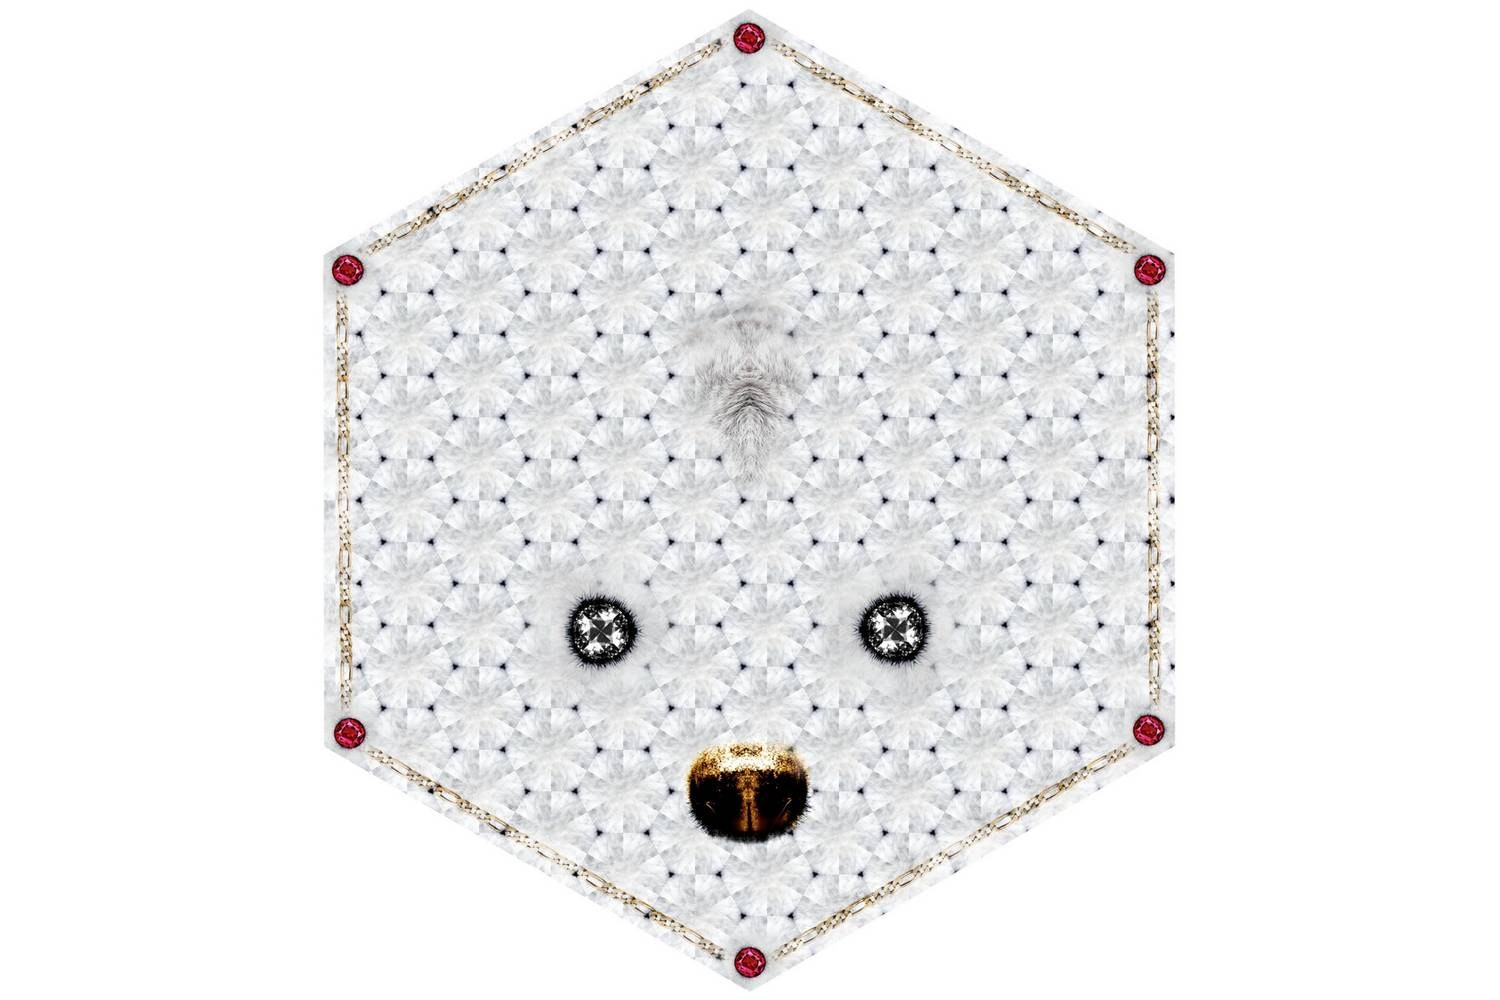 Crystal Teddy Rug by Marcel Wanders for Moooi Carpets